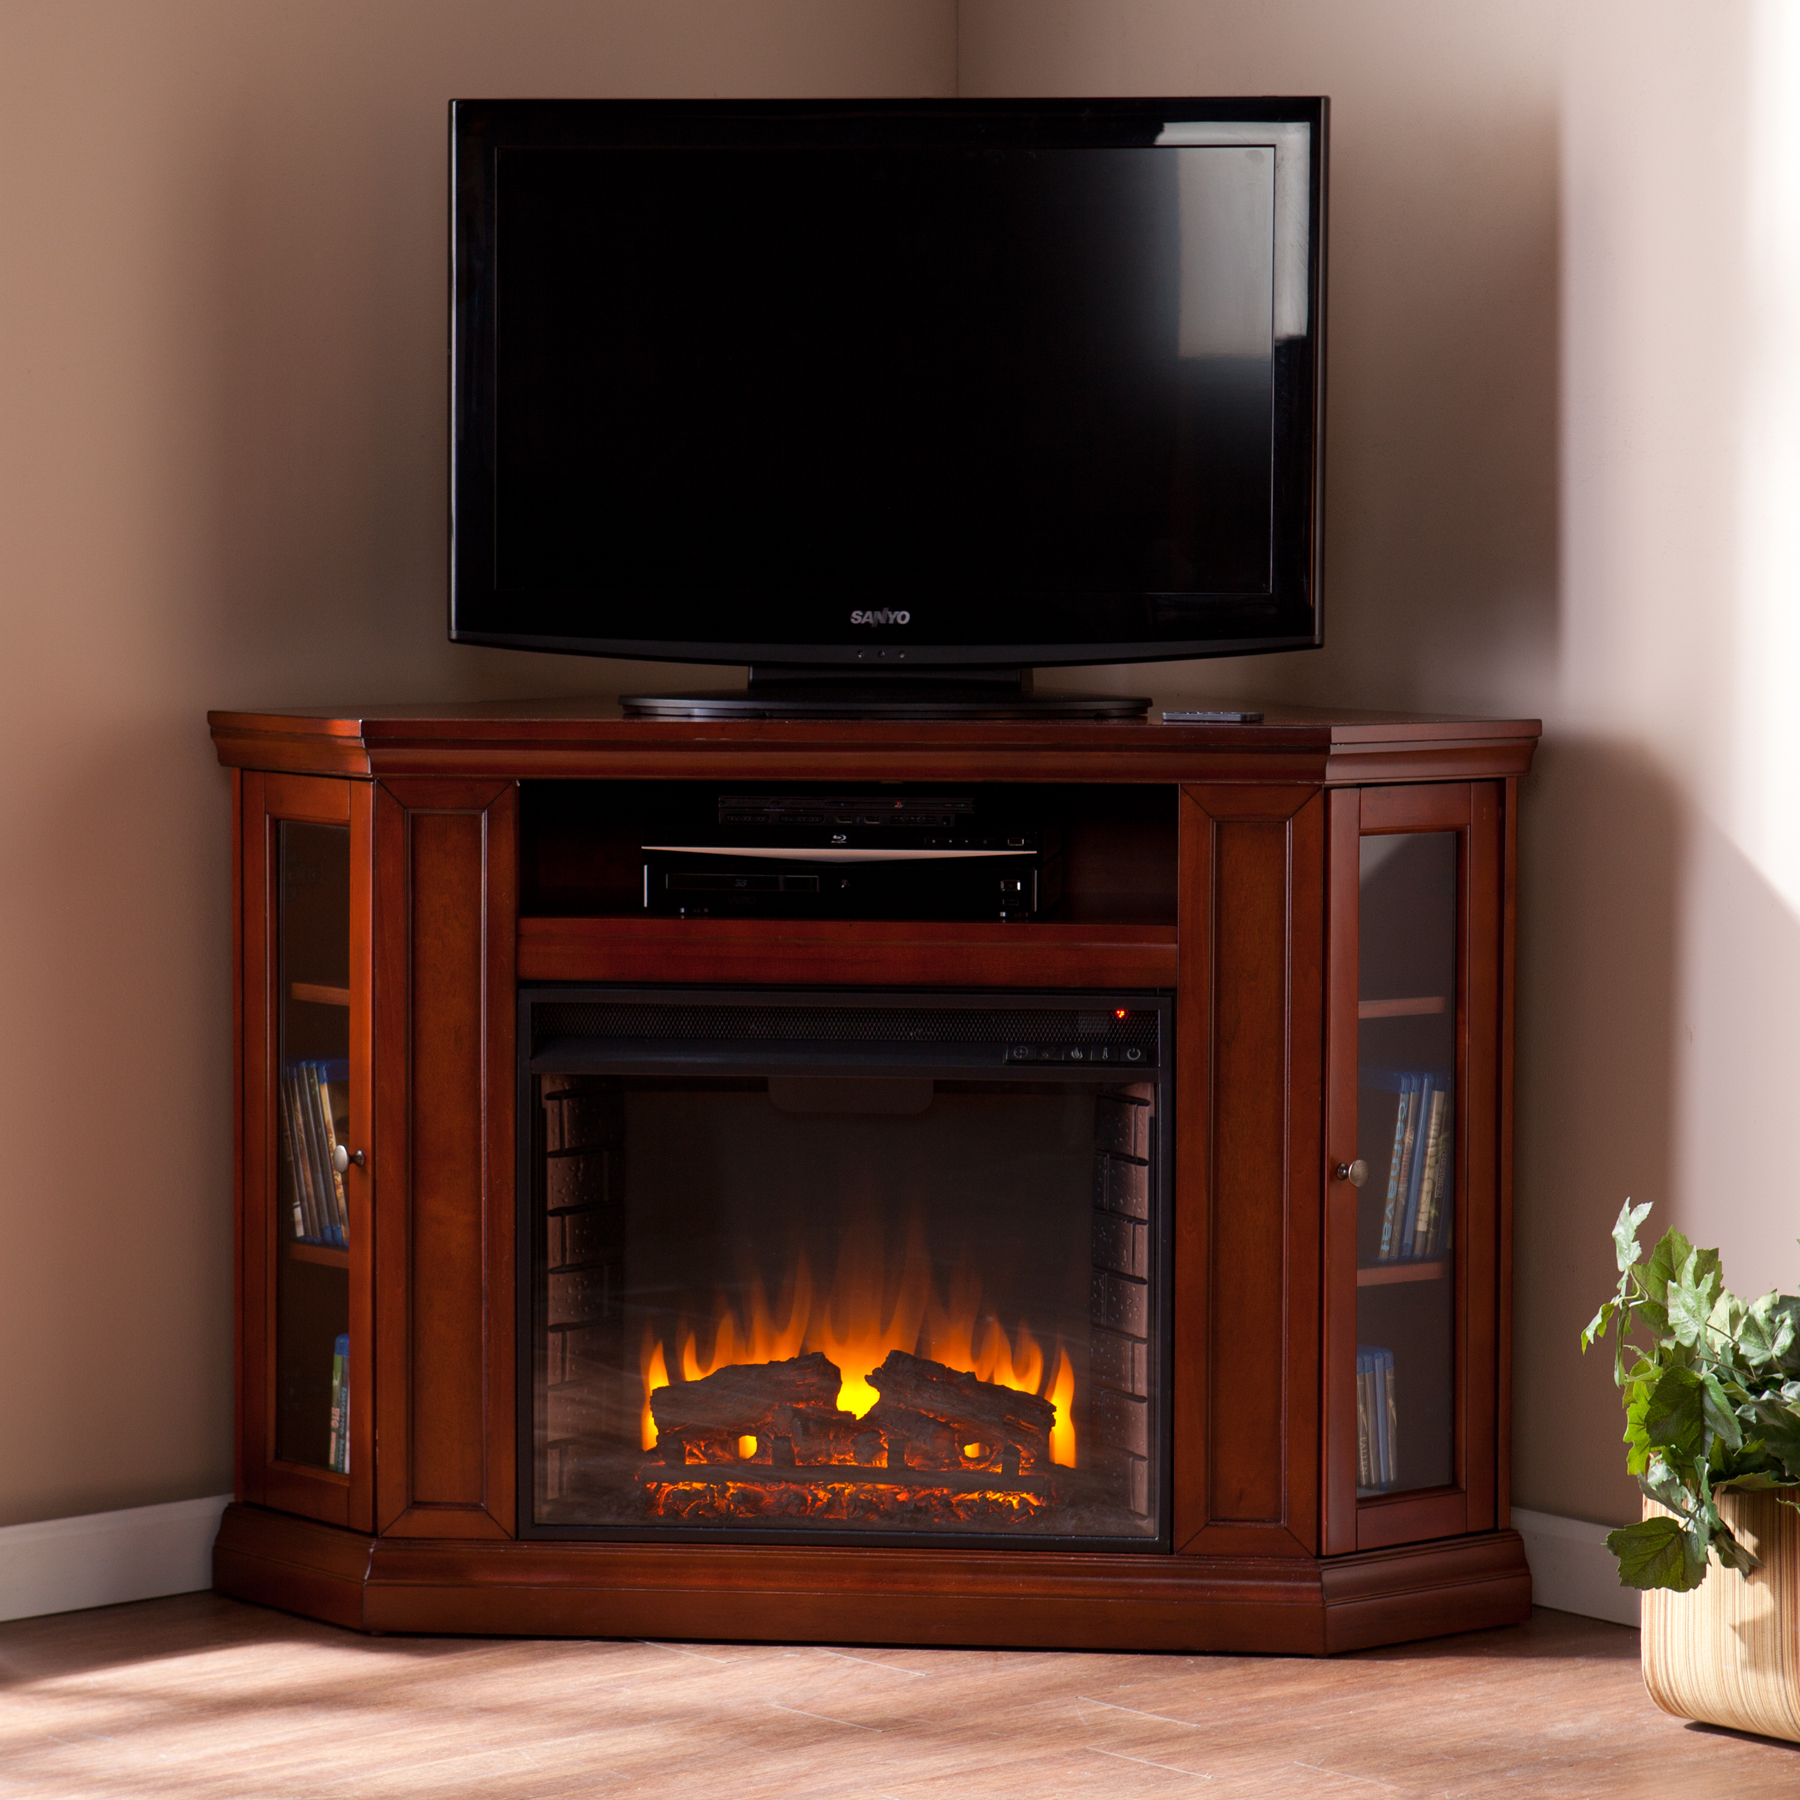 Corner fireplace living room furniture placement